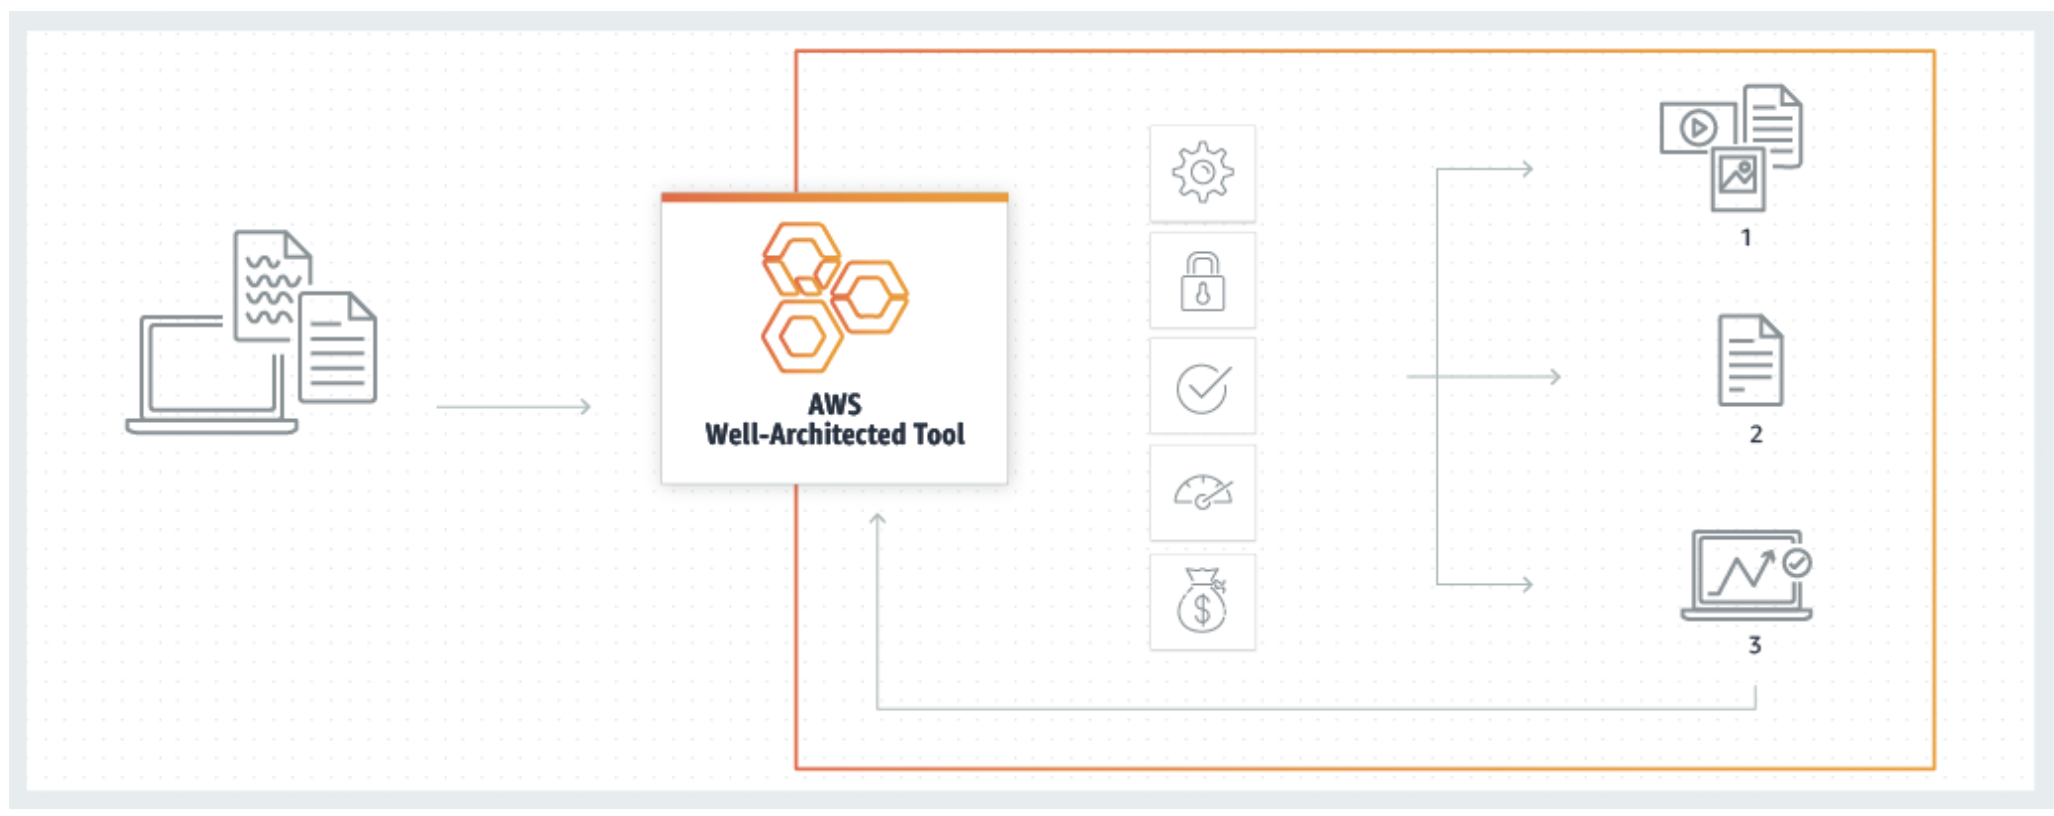 aws well architected tool